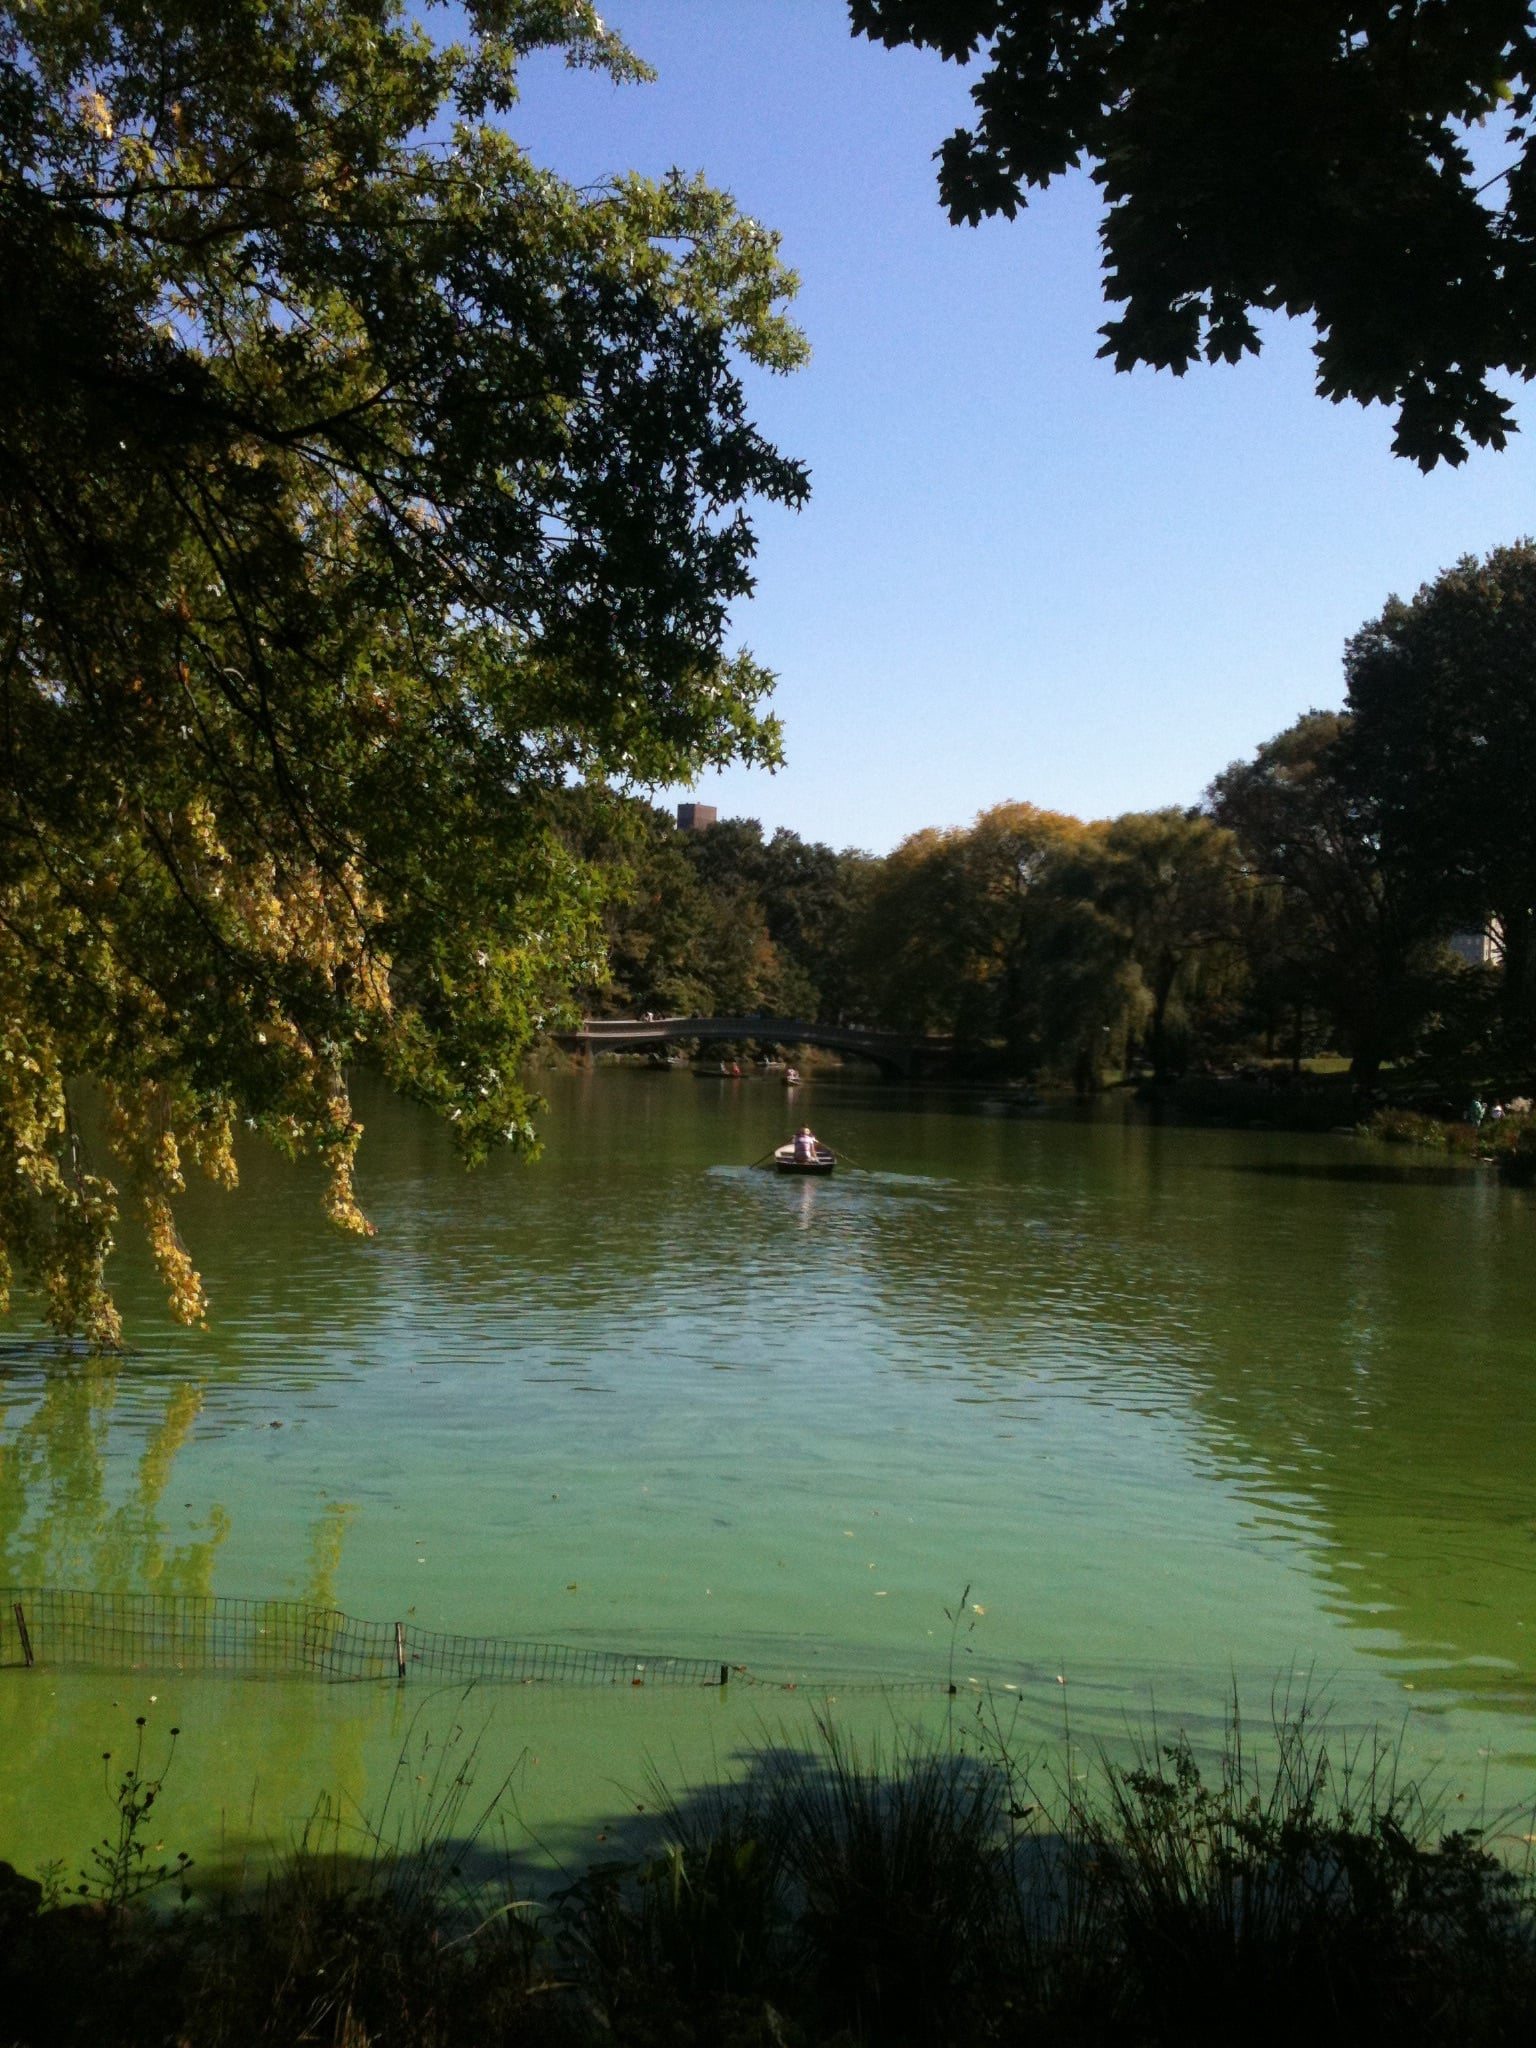 The Central Park Lake can be navigated in rental boats in Spring and Summer. Photo: Marco Dettling